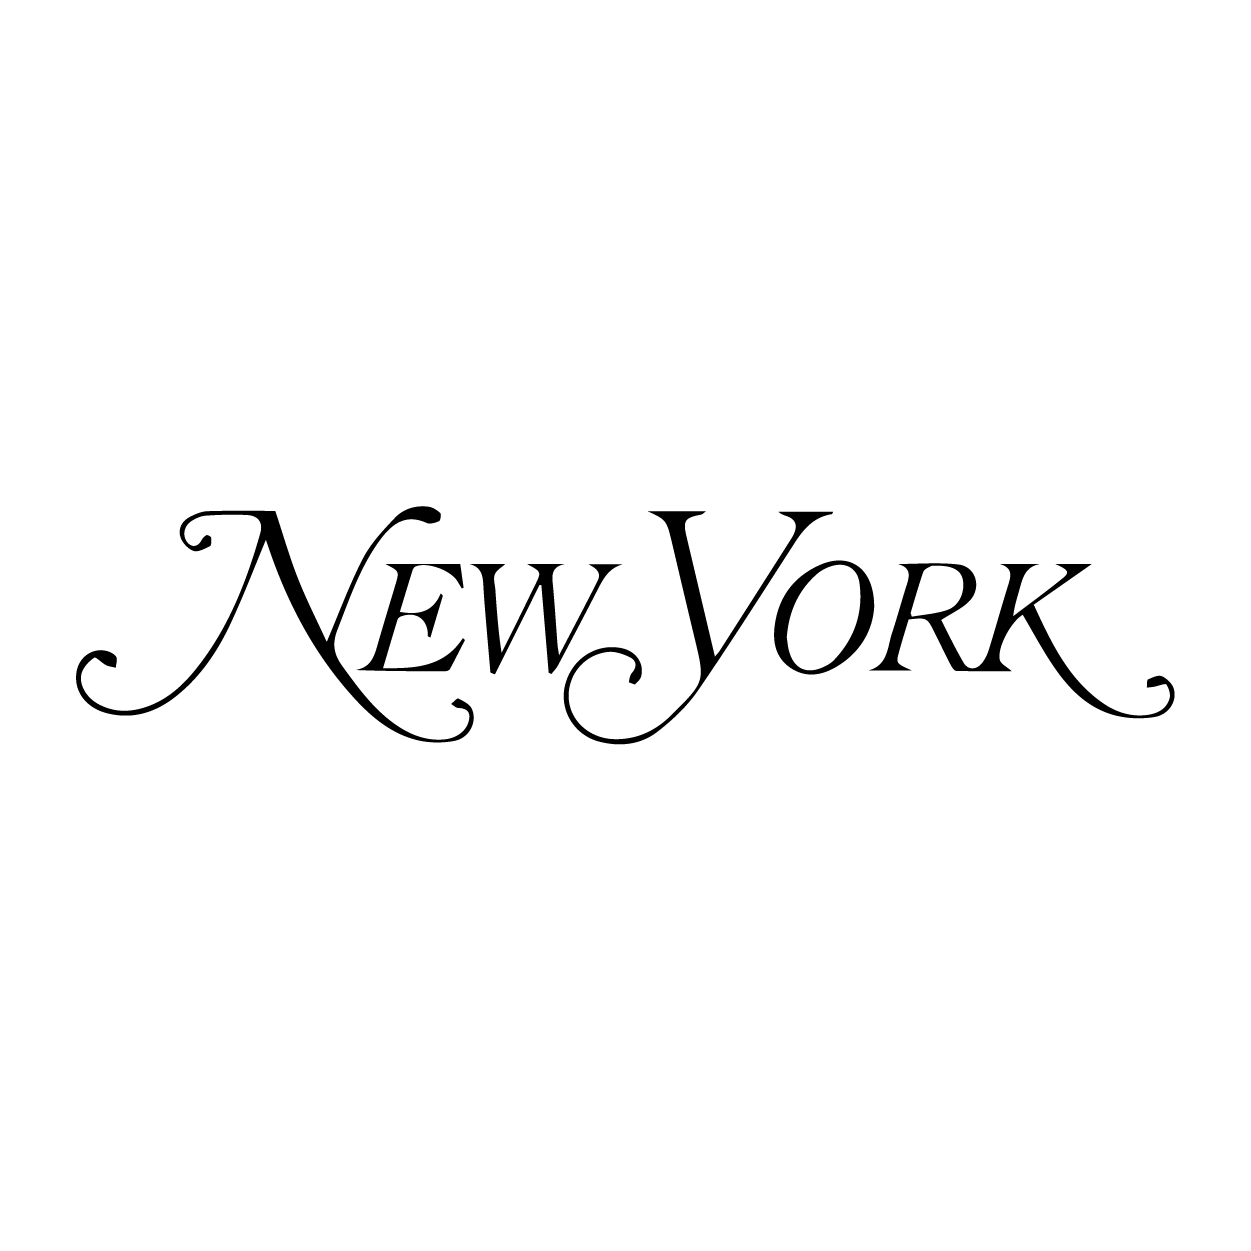 THE BREATHING CLASS PRESS LOGOS_NEW YORK MAGAZINE.png